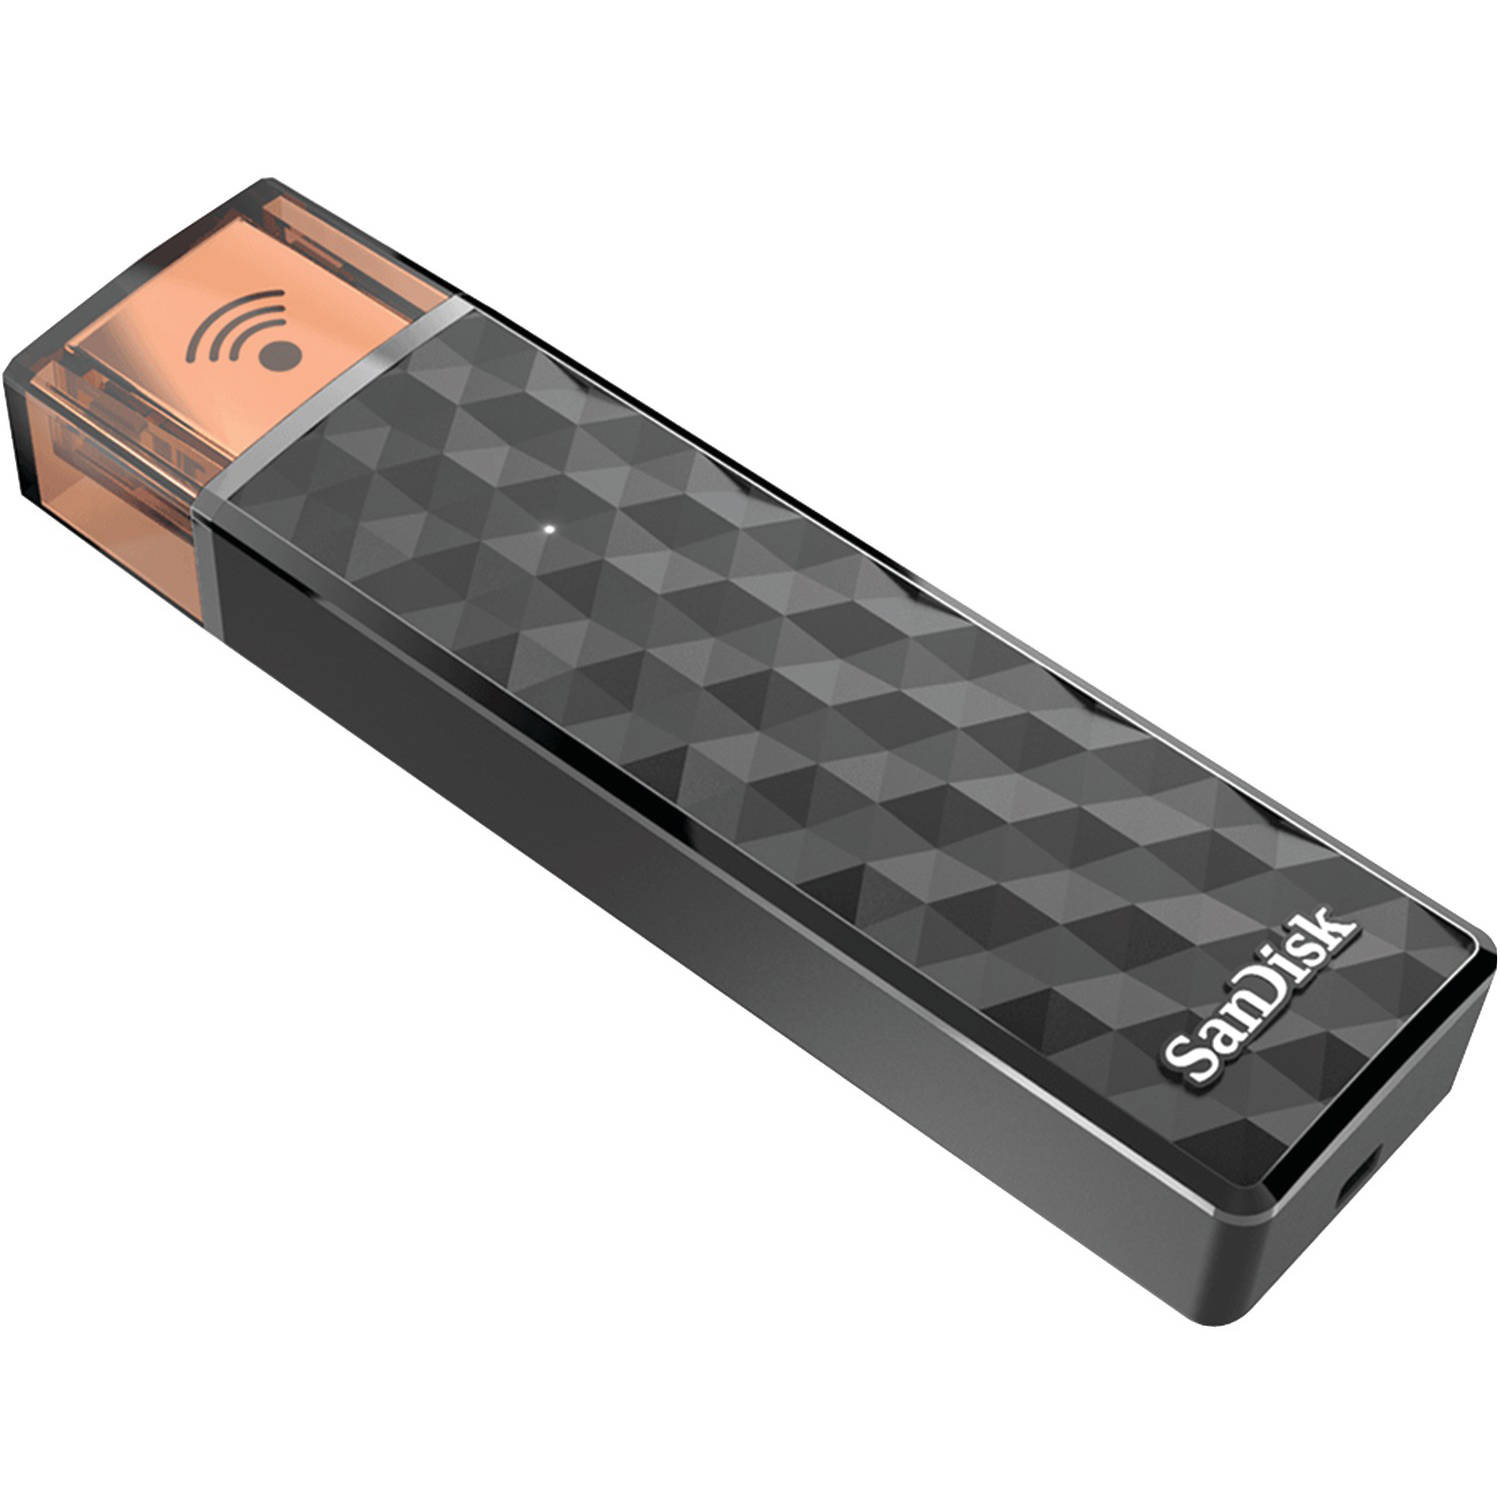 Sandisk SDWS4-128G-A46 Connect Wireless Stick Flash Drive, 128GB